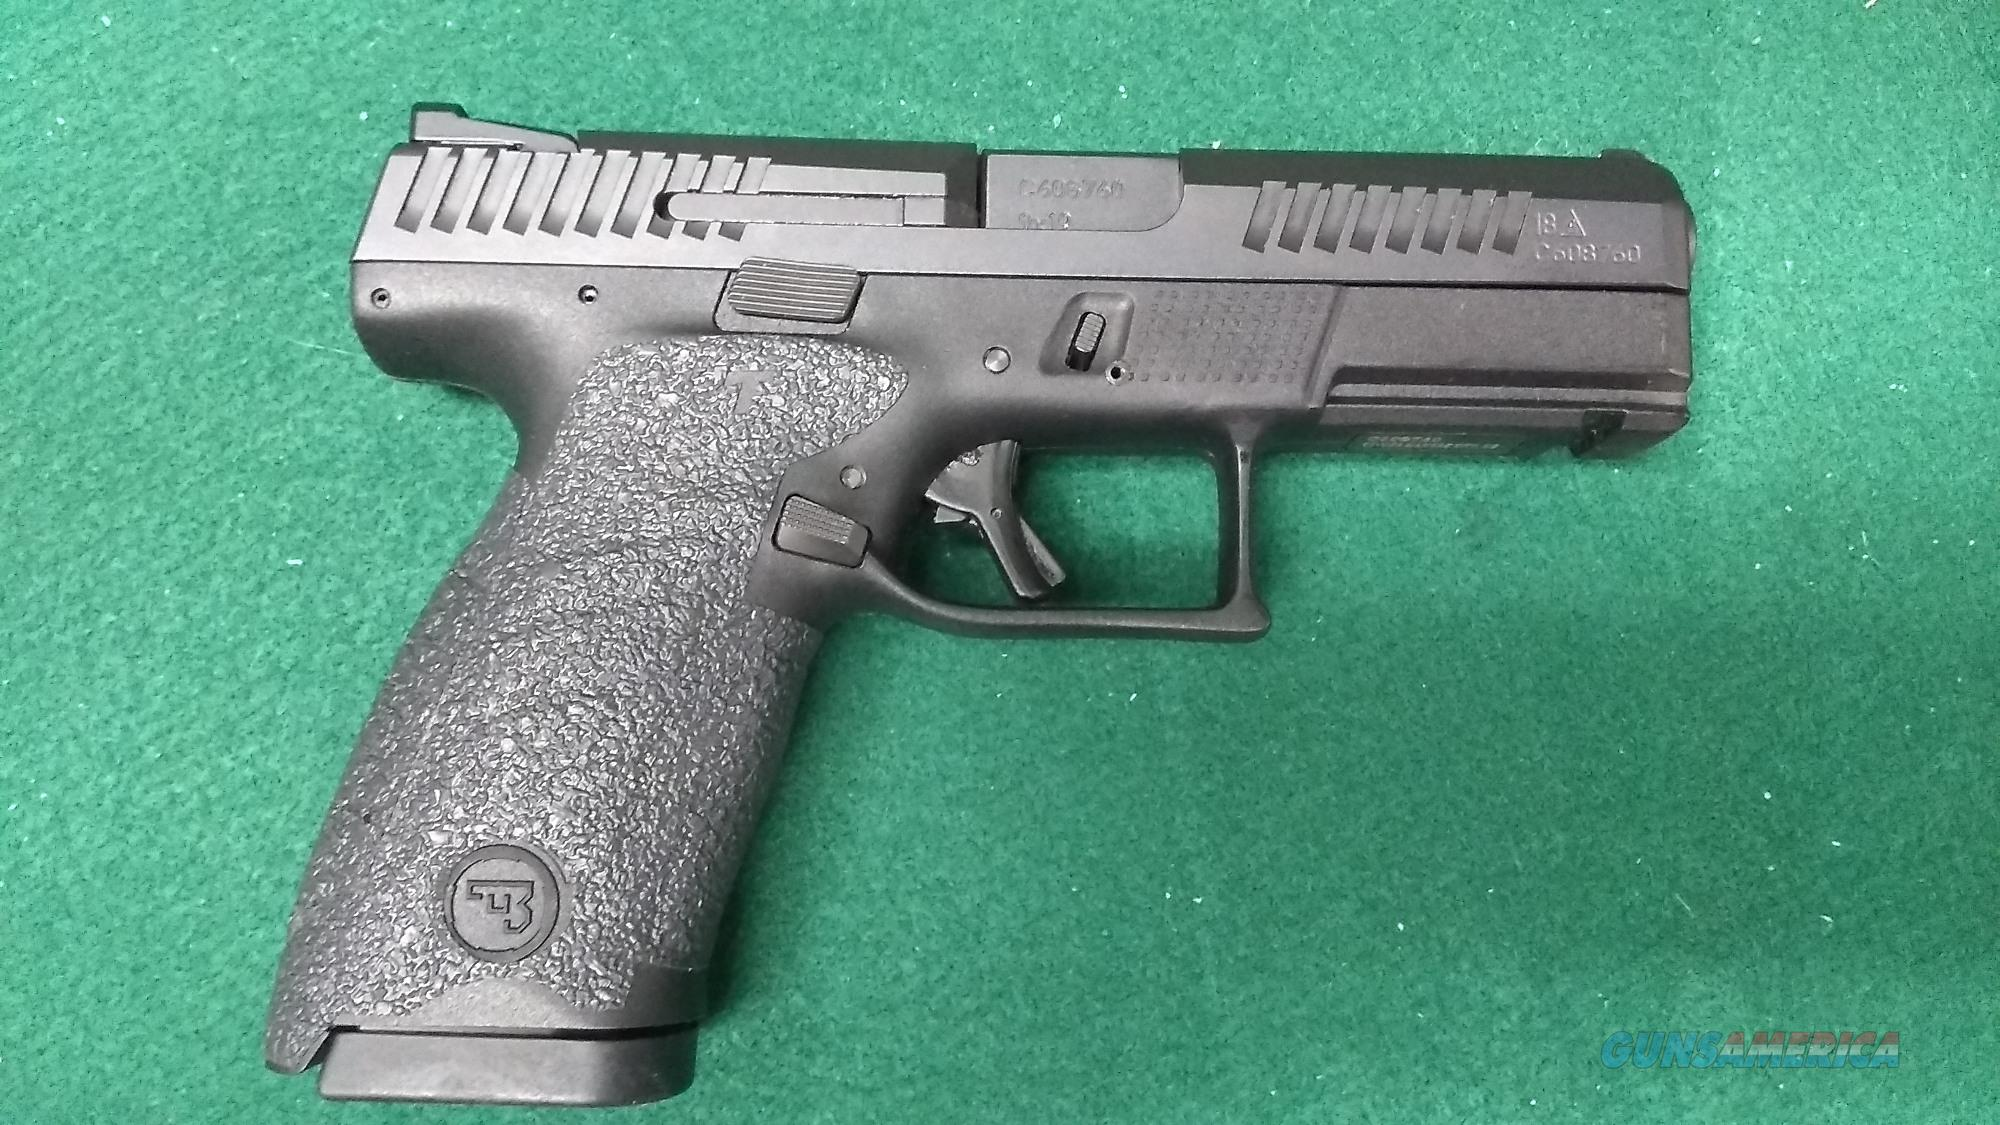 CZ P10C Pistol 9mm - Two 15rd  Mags - Kydex Holster